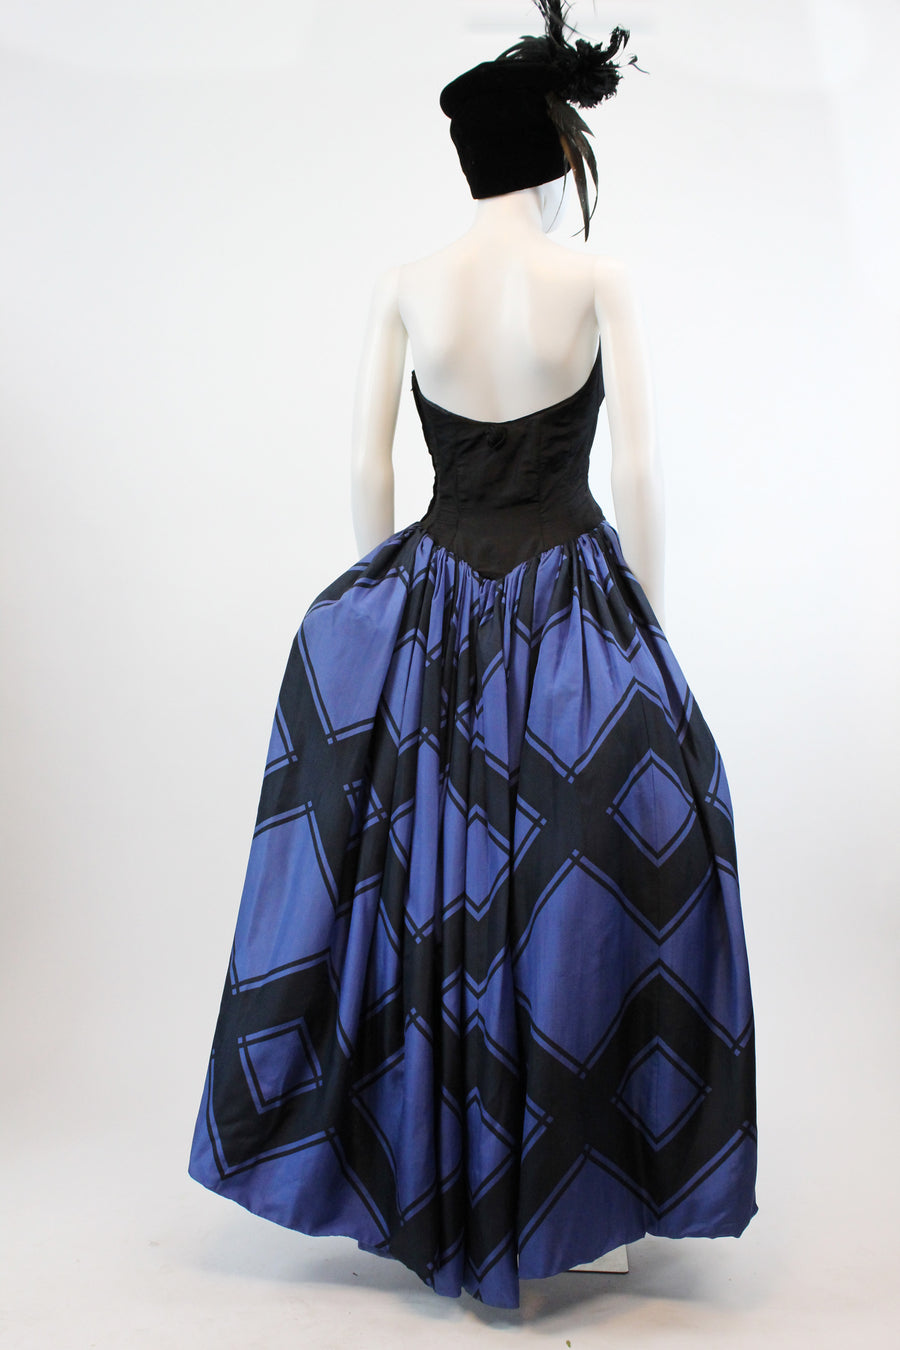 1950s Estevez strapless ball gown xs | vintage silk dress designer | new in